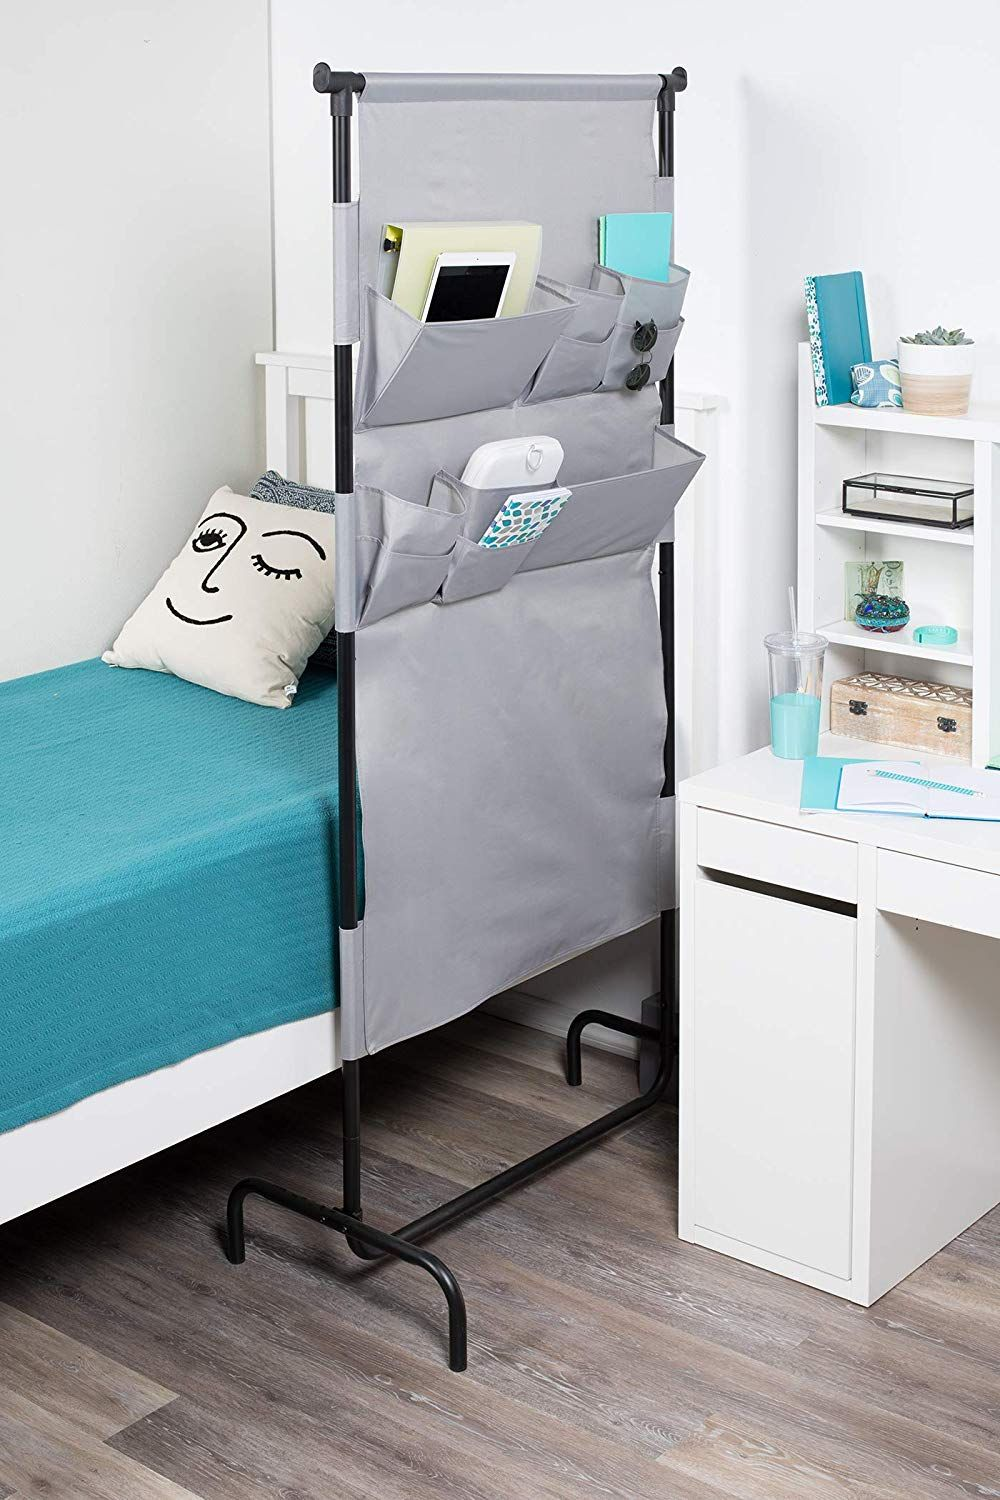 Design Your Own Dorm Room: Create Your Own Privacy Even In A Small Space Such As Dorm